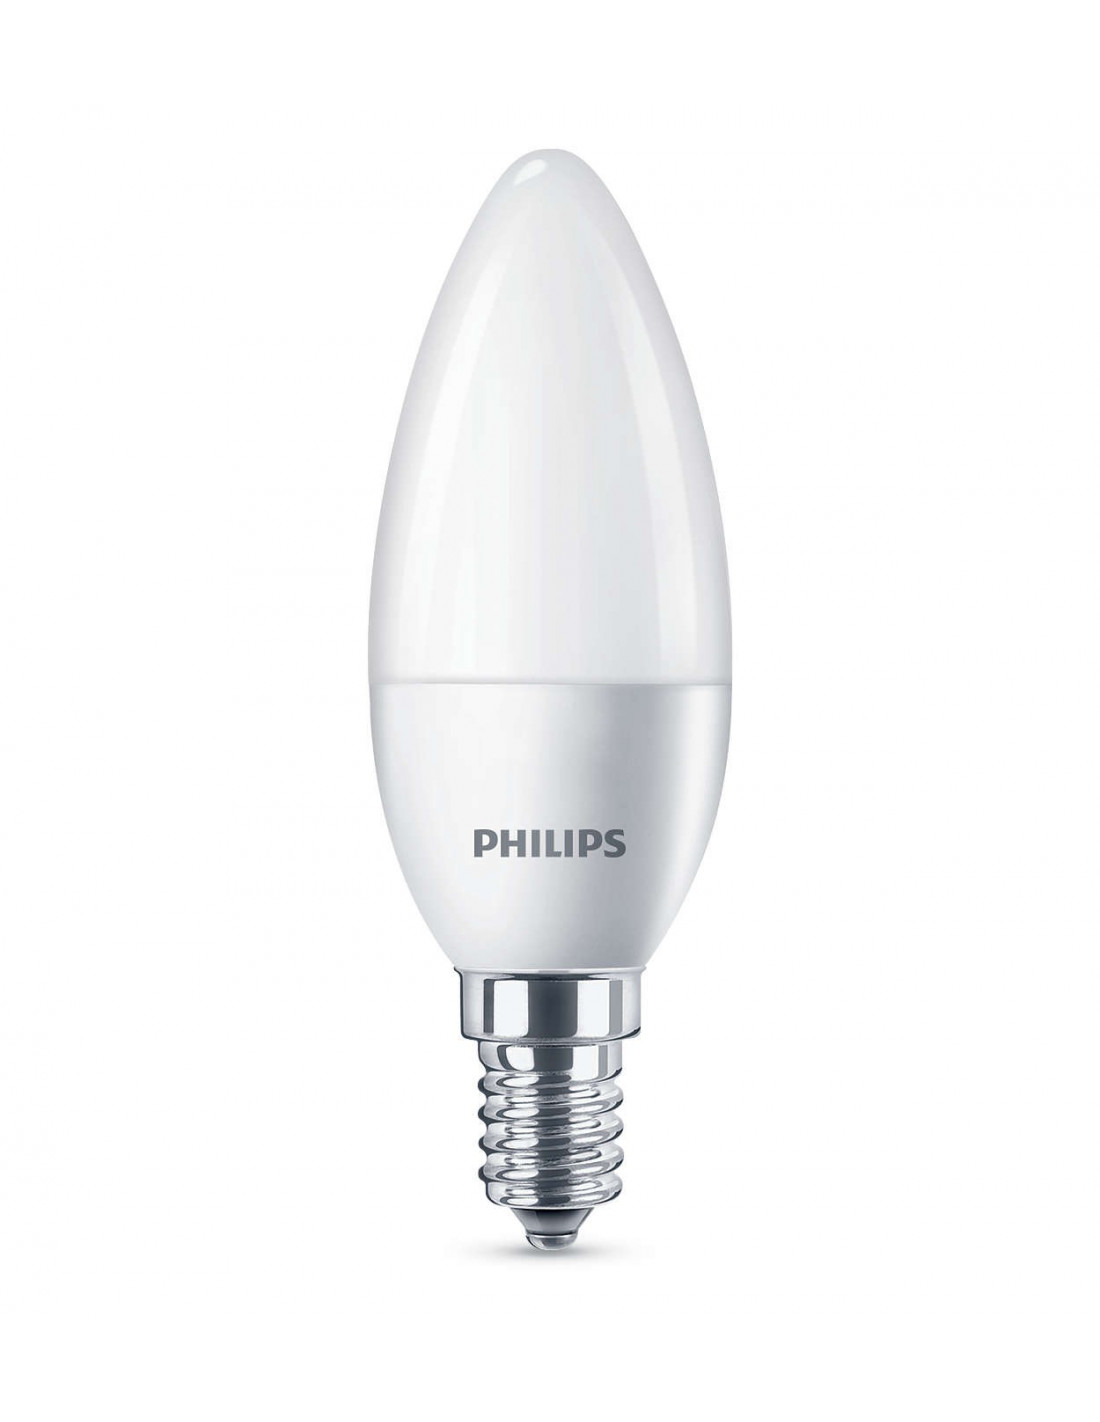 philips ampoule led flamme 5 5w 40w e14 blanc chaud intensit invariable hyper brico. Black Bedroom Furniture Sets. Home Design Ideas